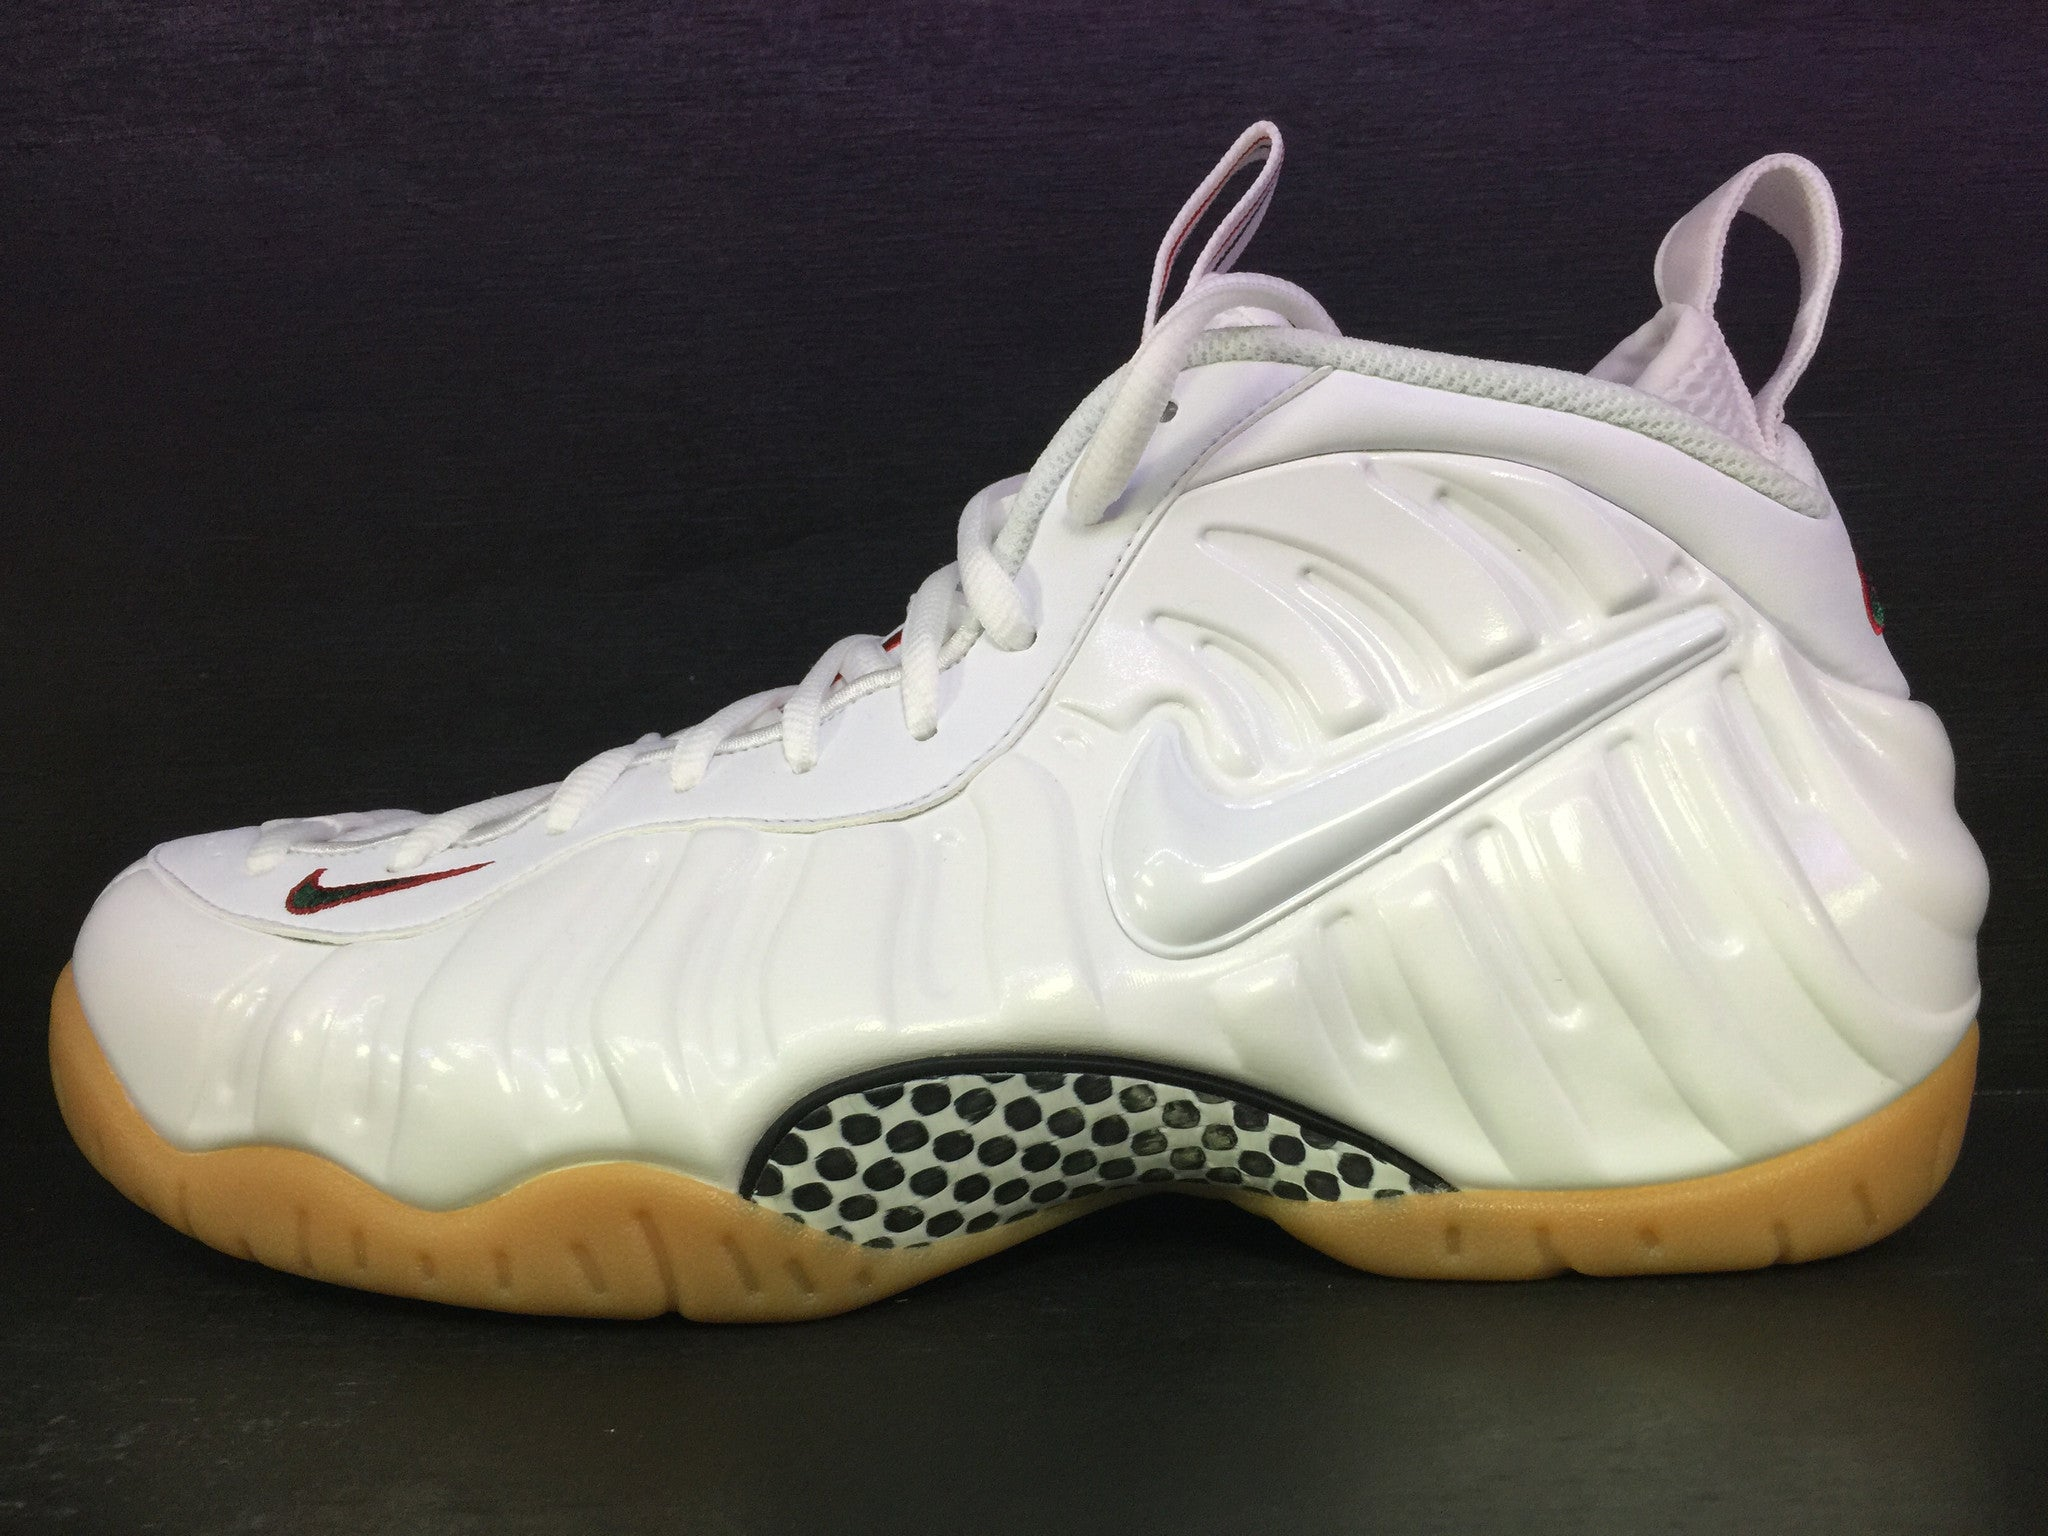 Nike Air Foamposite Pro 'White Gucci'